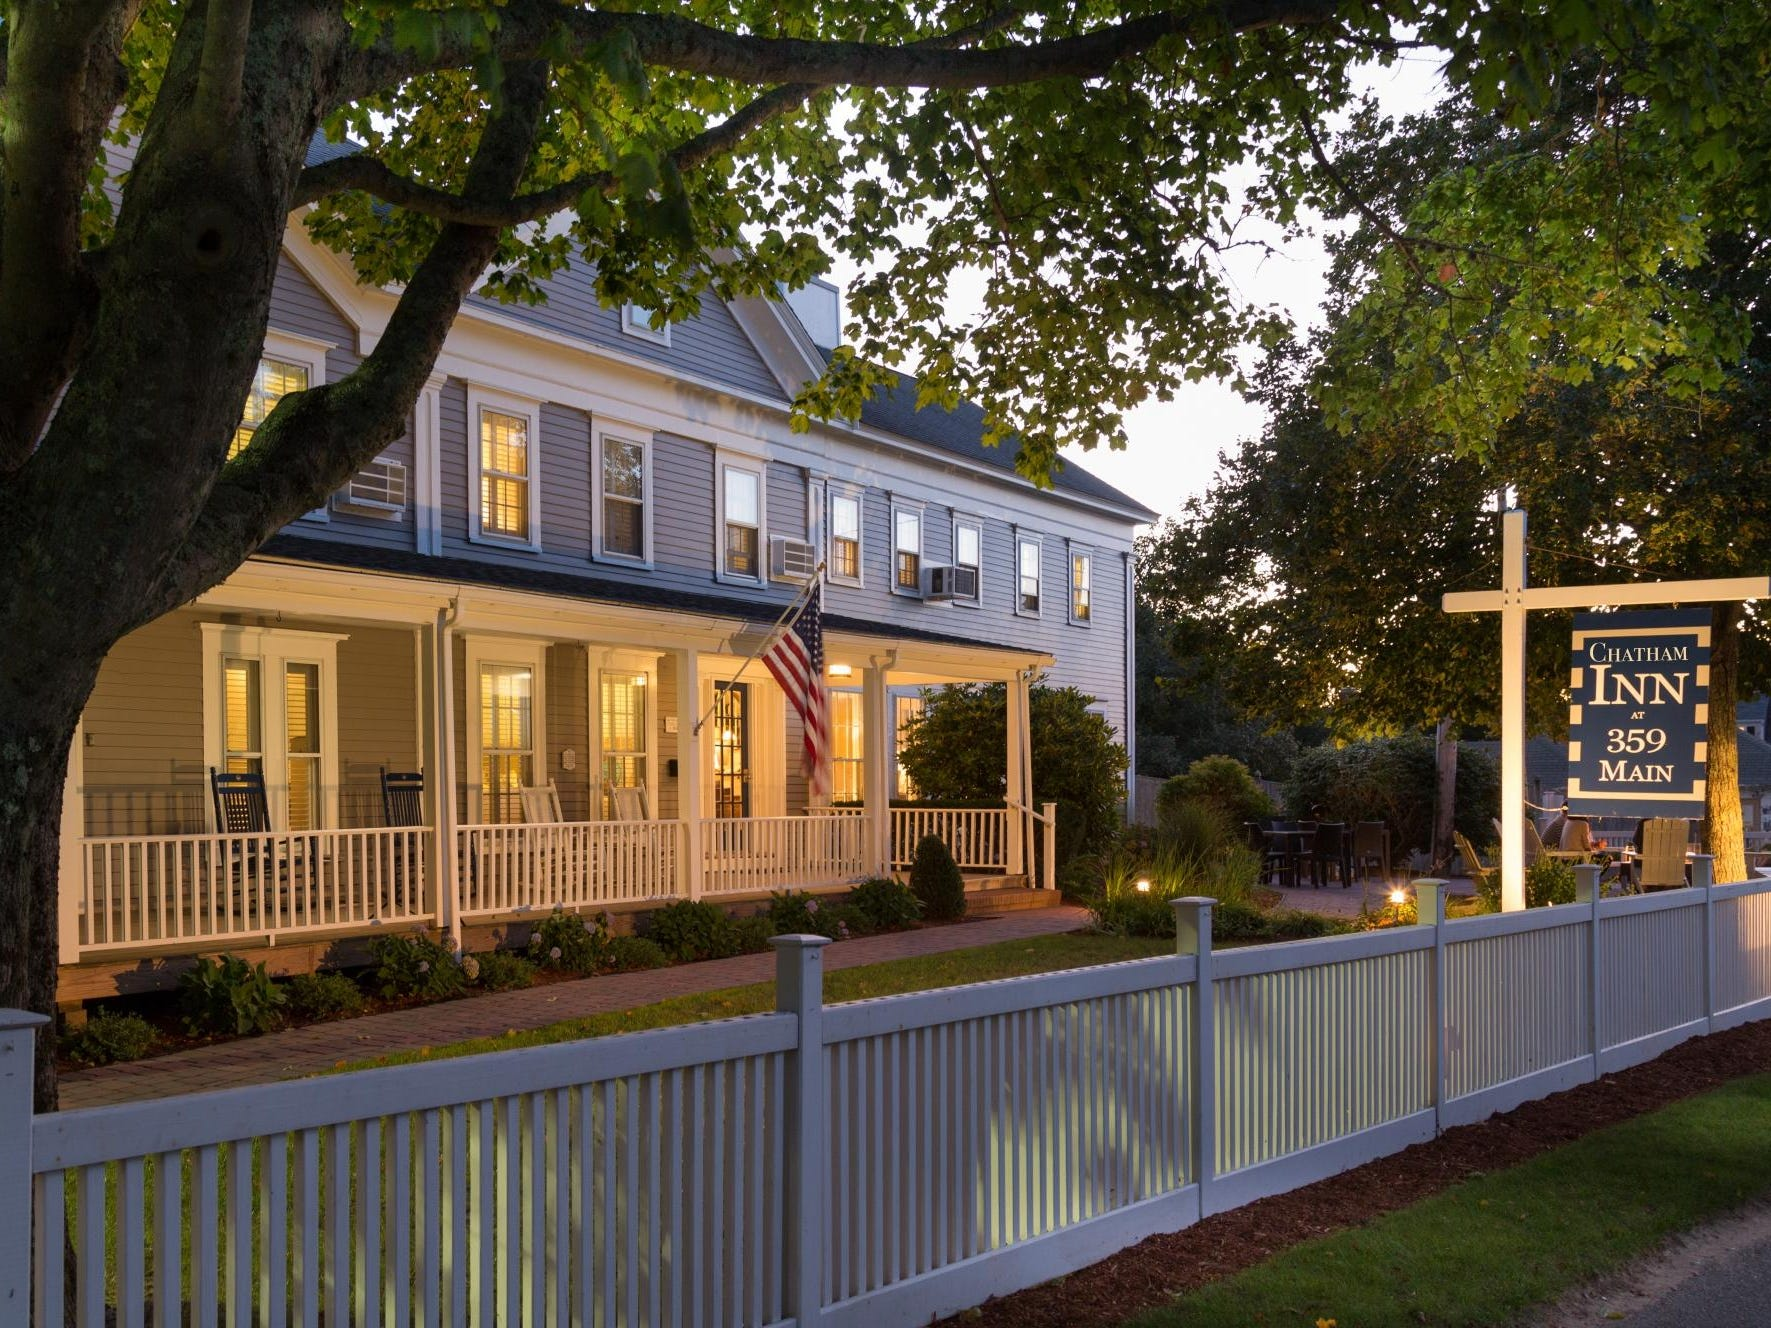 No. 12: Chatham Inn in Chatham, Massachusetts.